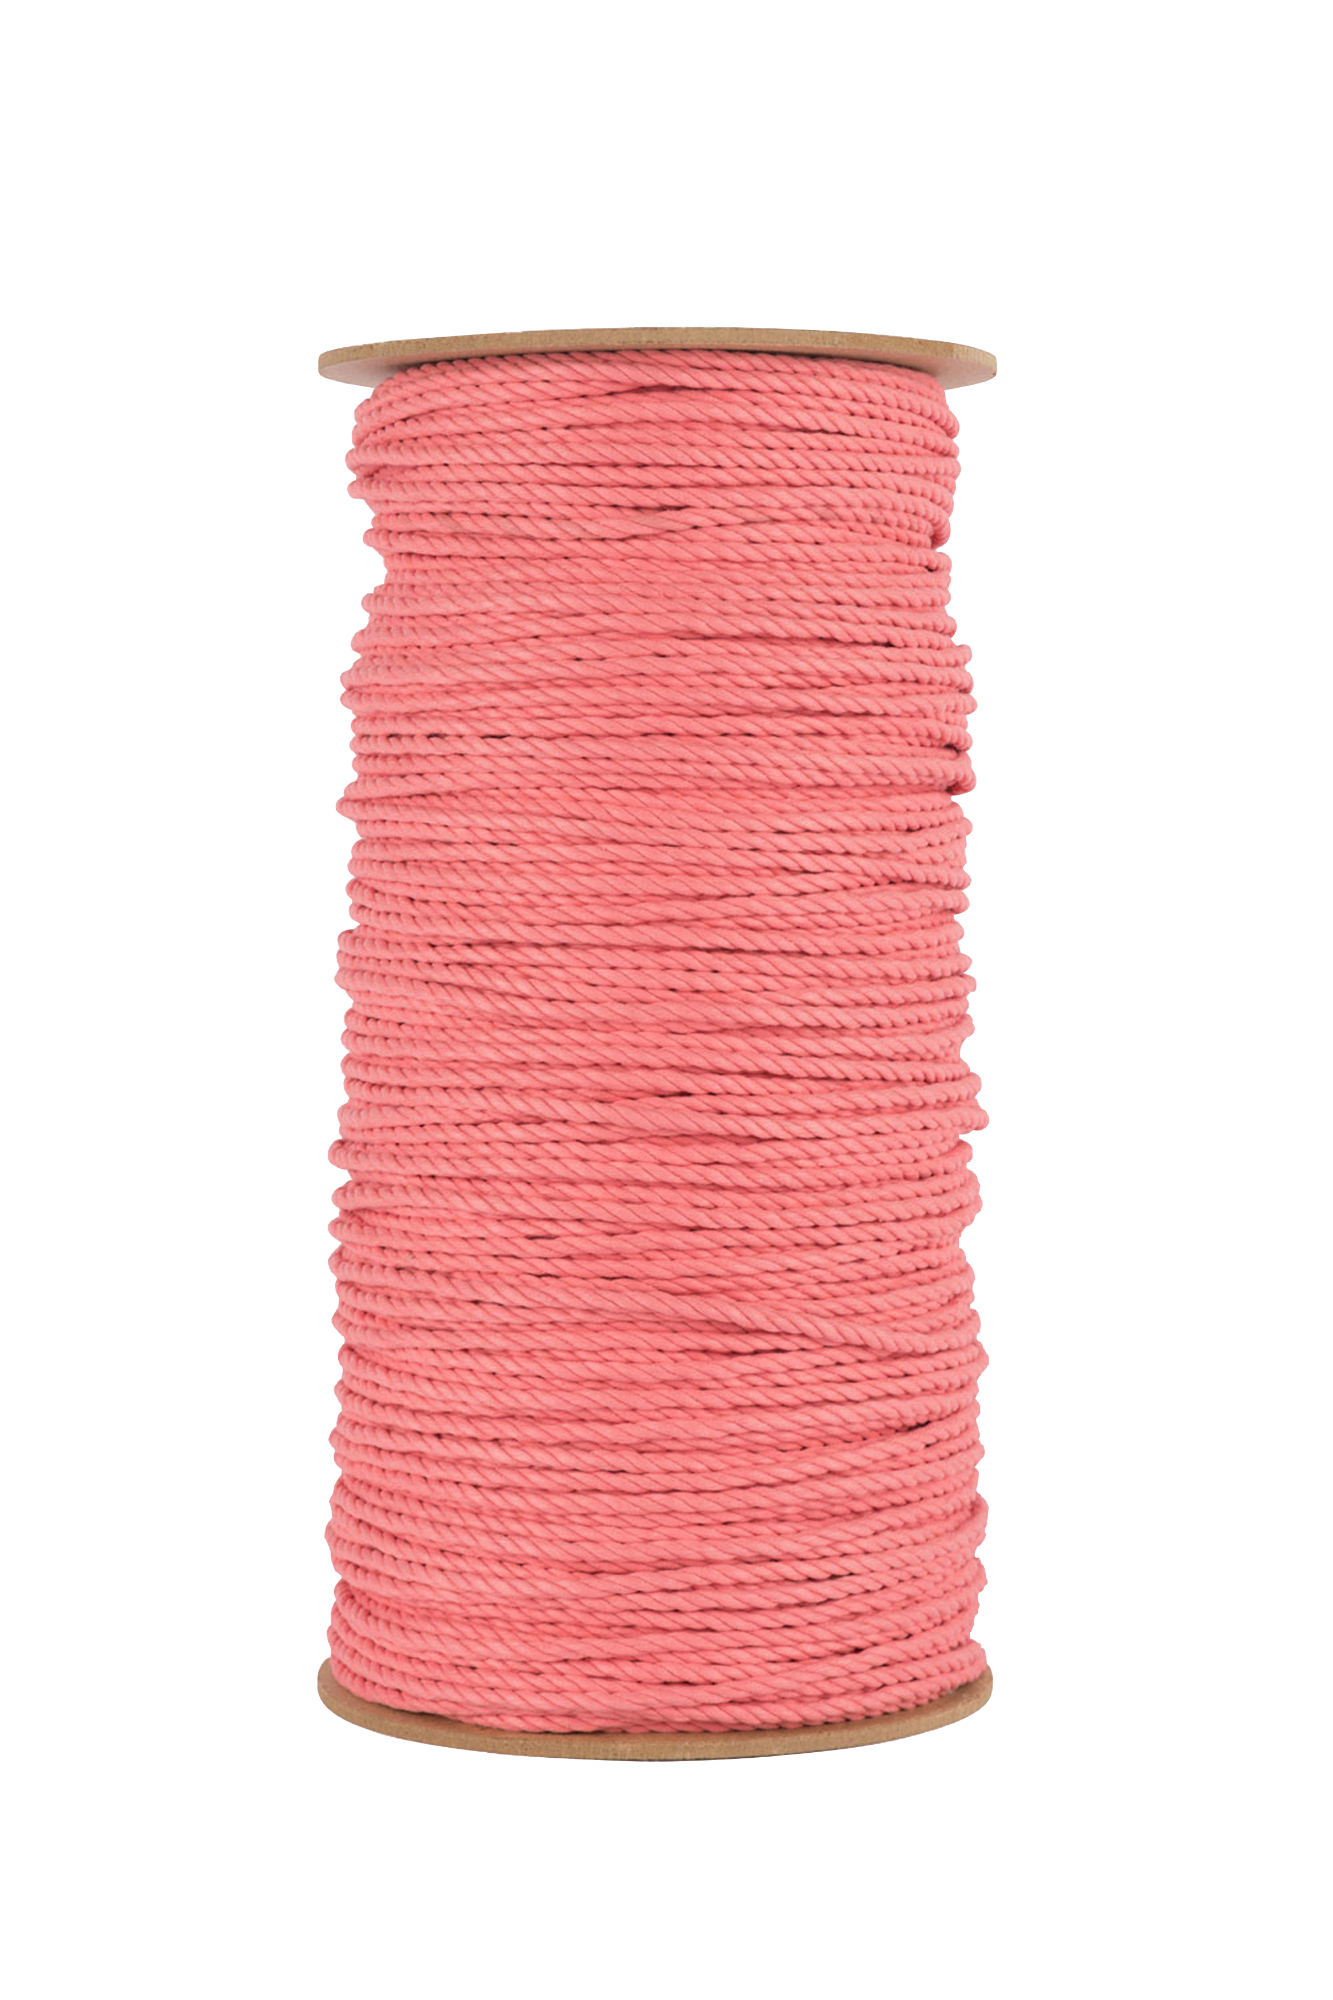 5mm Cotton Rope 1000 ft